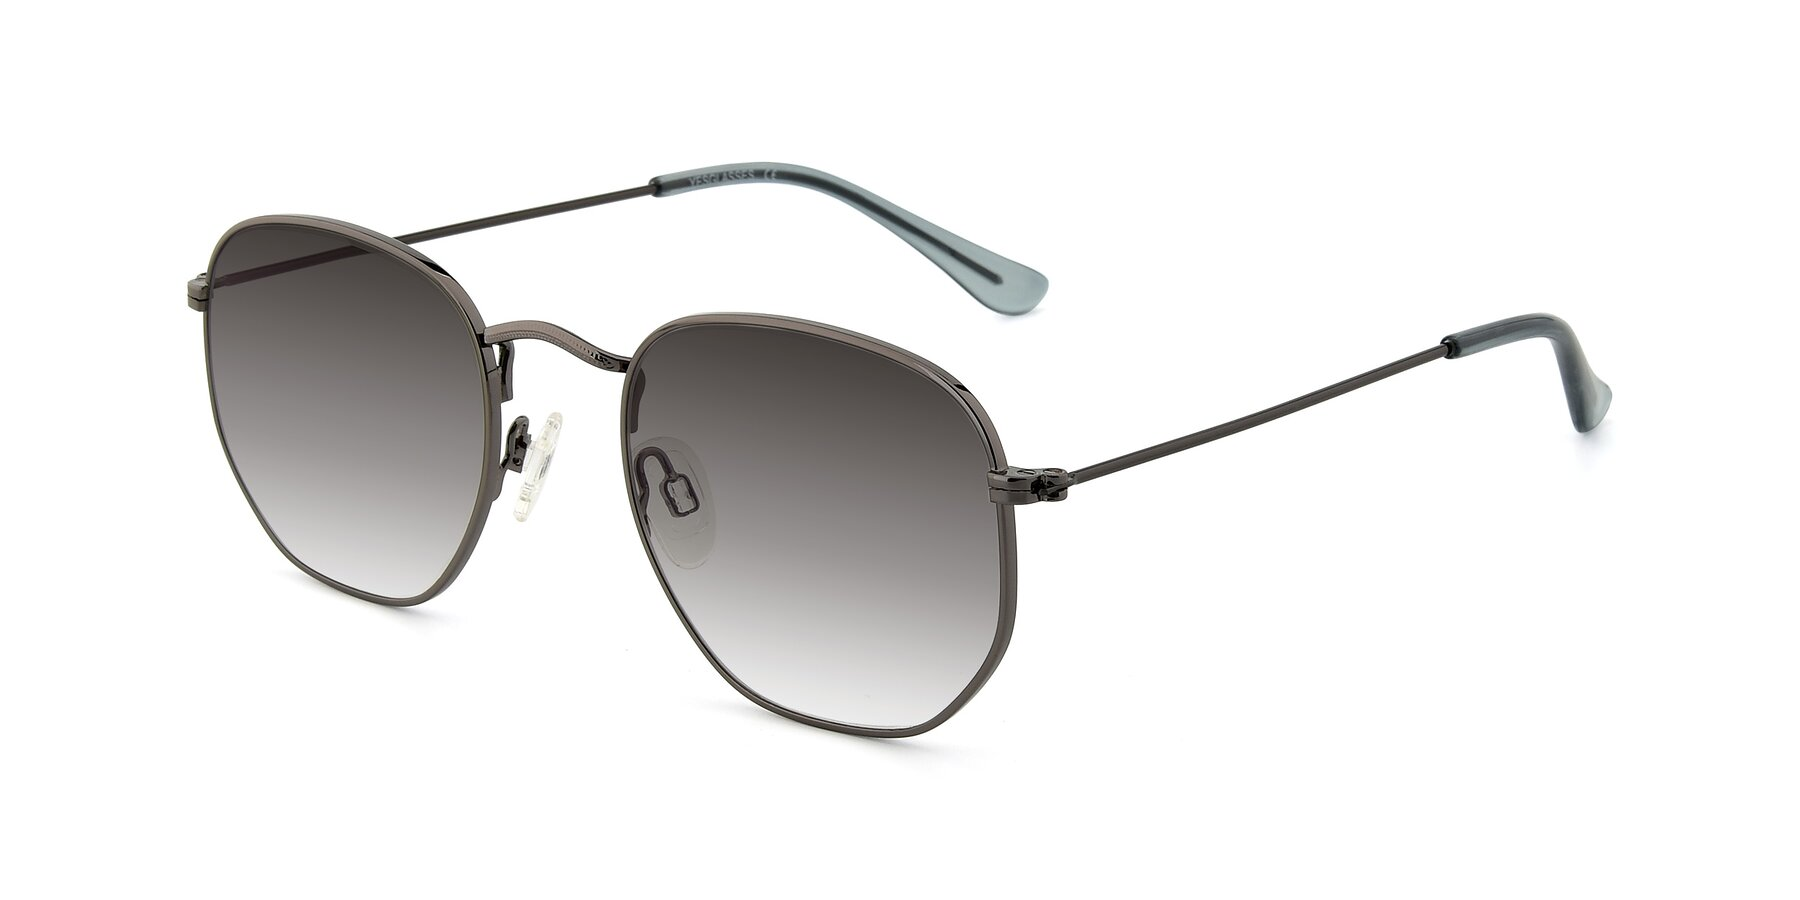 Angle of SSR1943 in Grey with Gray Gradient Lenses